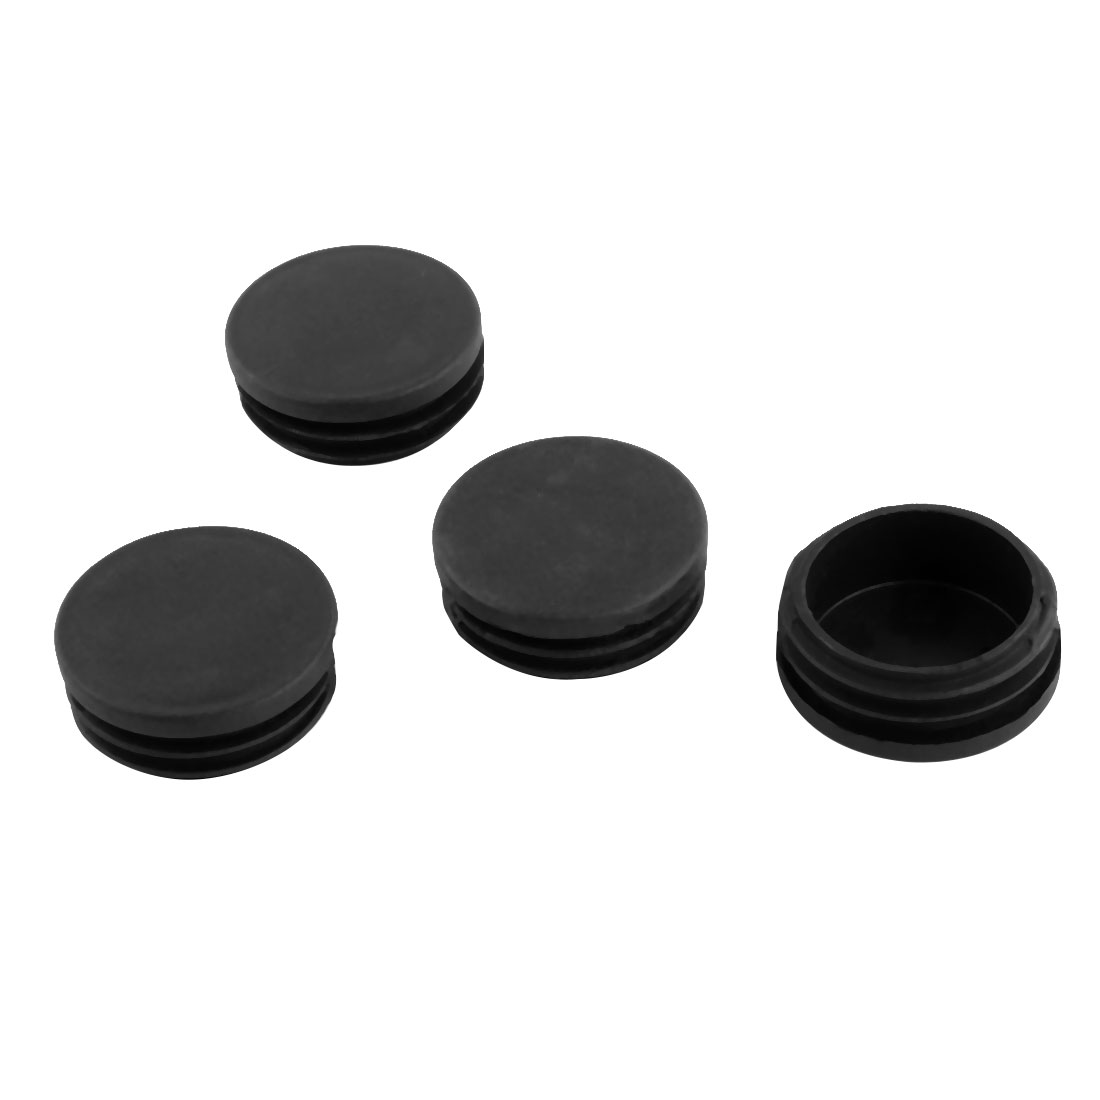 4 Pcs Black Plastic 45mm Dia Round Tubing Tube Inserts Bungs Covers